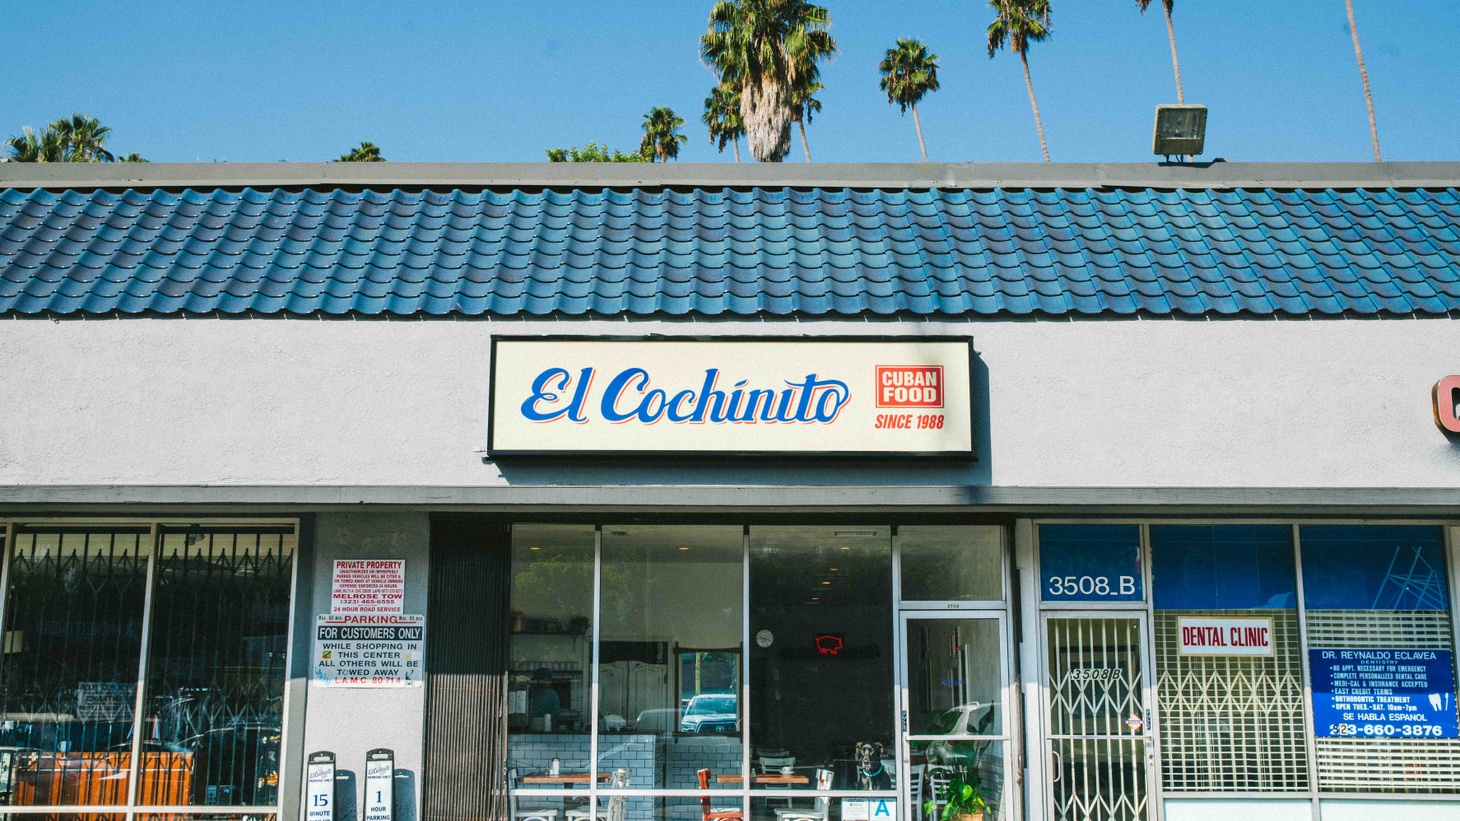 Chef Daniel Navarro's grandmother, Gladys, opened El Cochinito 30 years ago, following in the footsteps of her father who had a restaurant in Cuba.